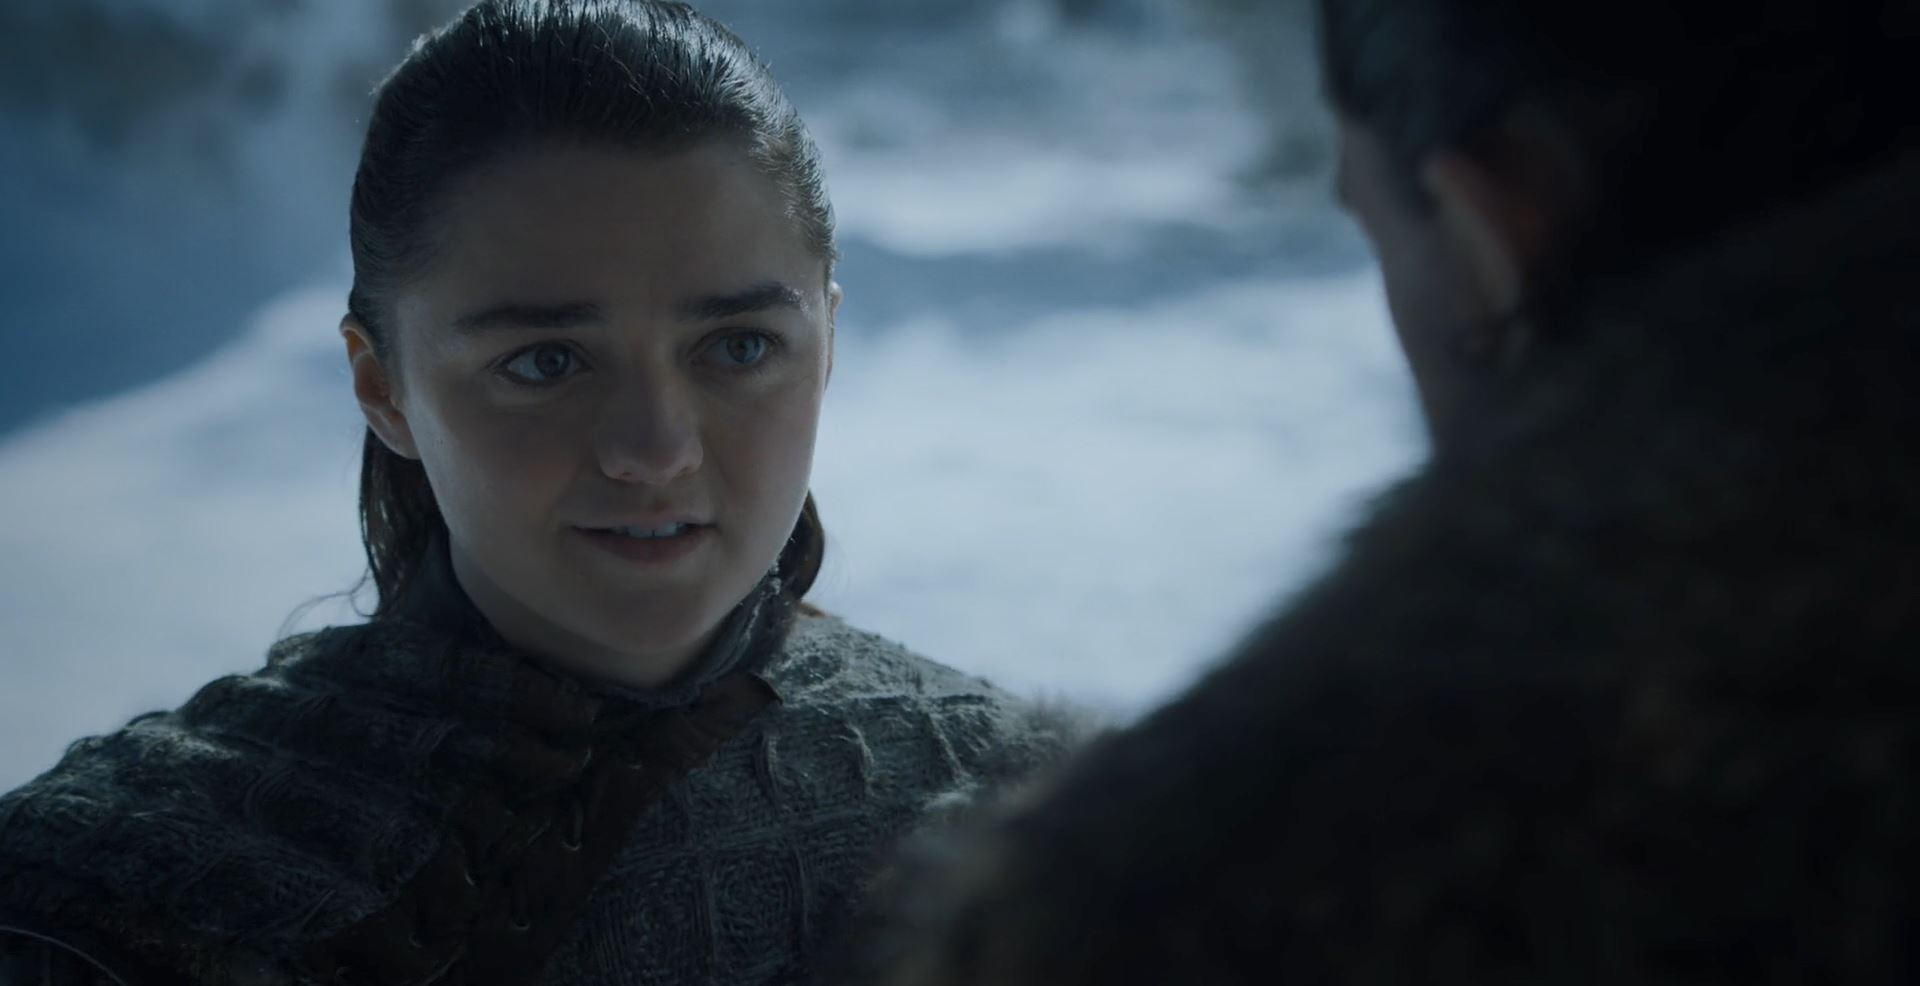 Game of Thrones S08E01 Winterfell Review - Arya meets with Jon